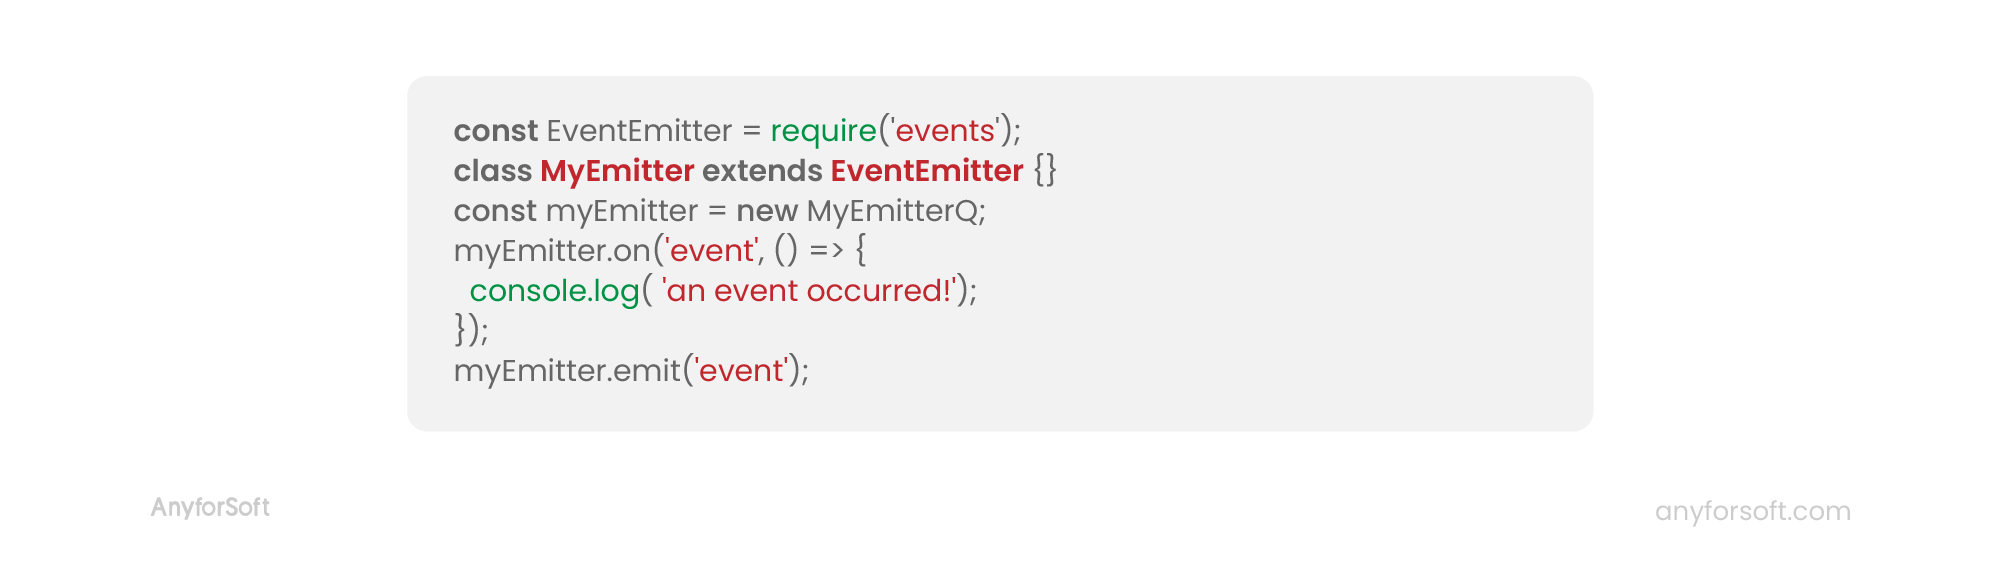 event emitter node js code example